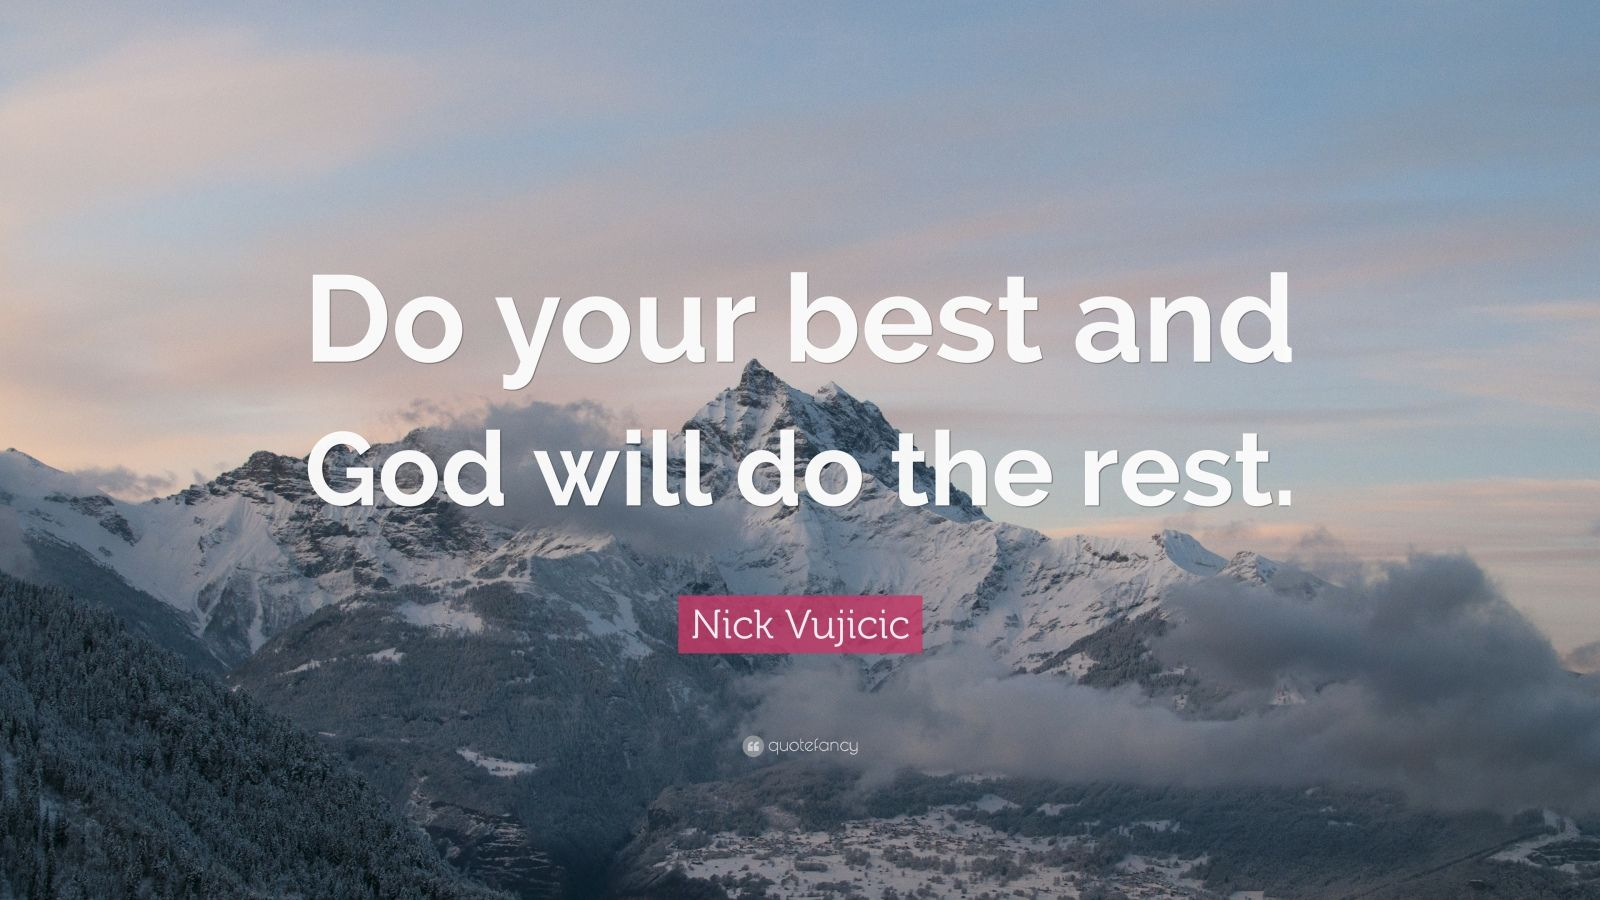 Nick Vujicic Quotes Wallpaper Nick Vujicic Quote Do Your Best And God Will Do The Rest